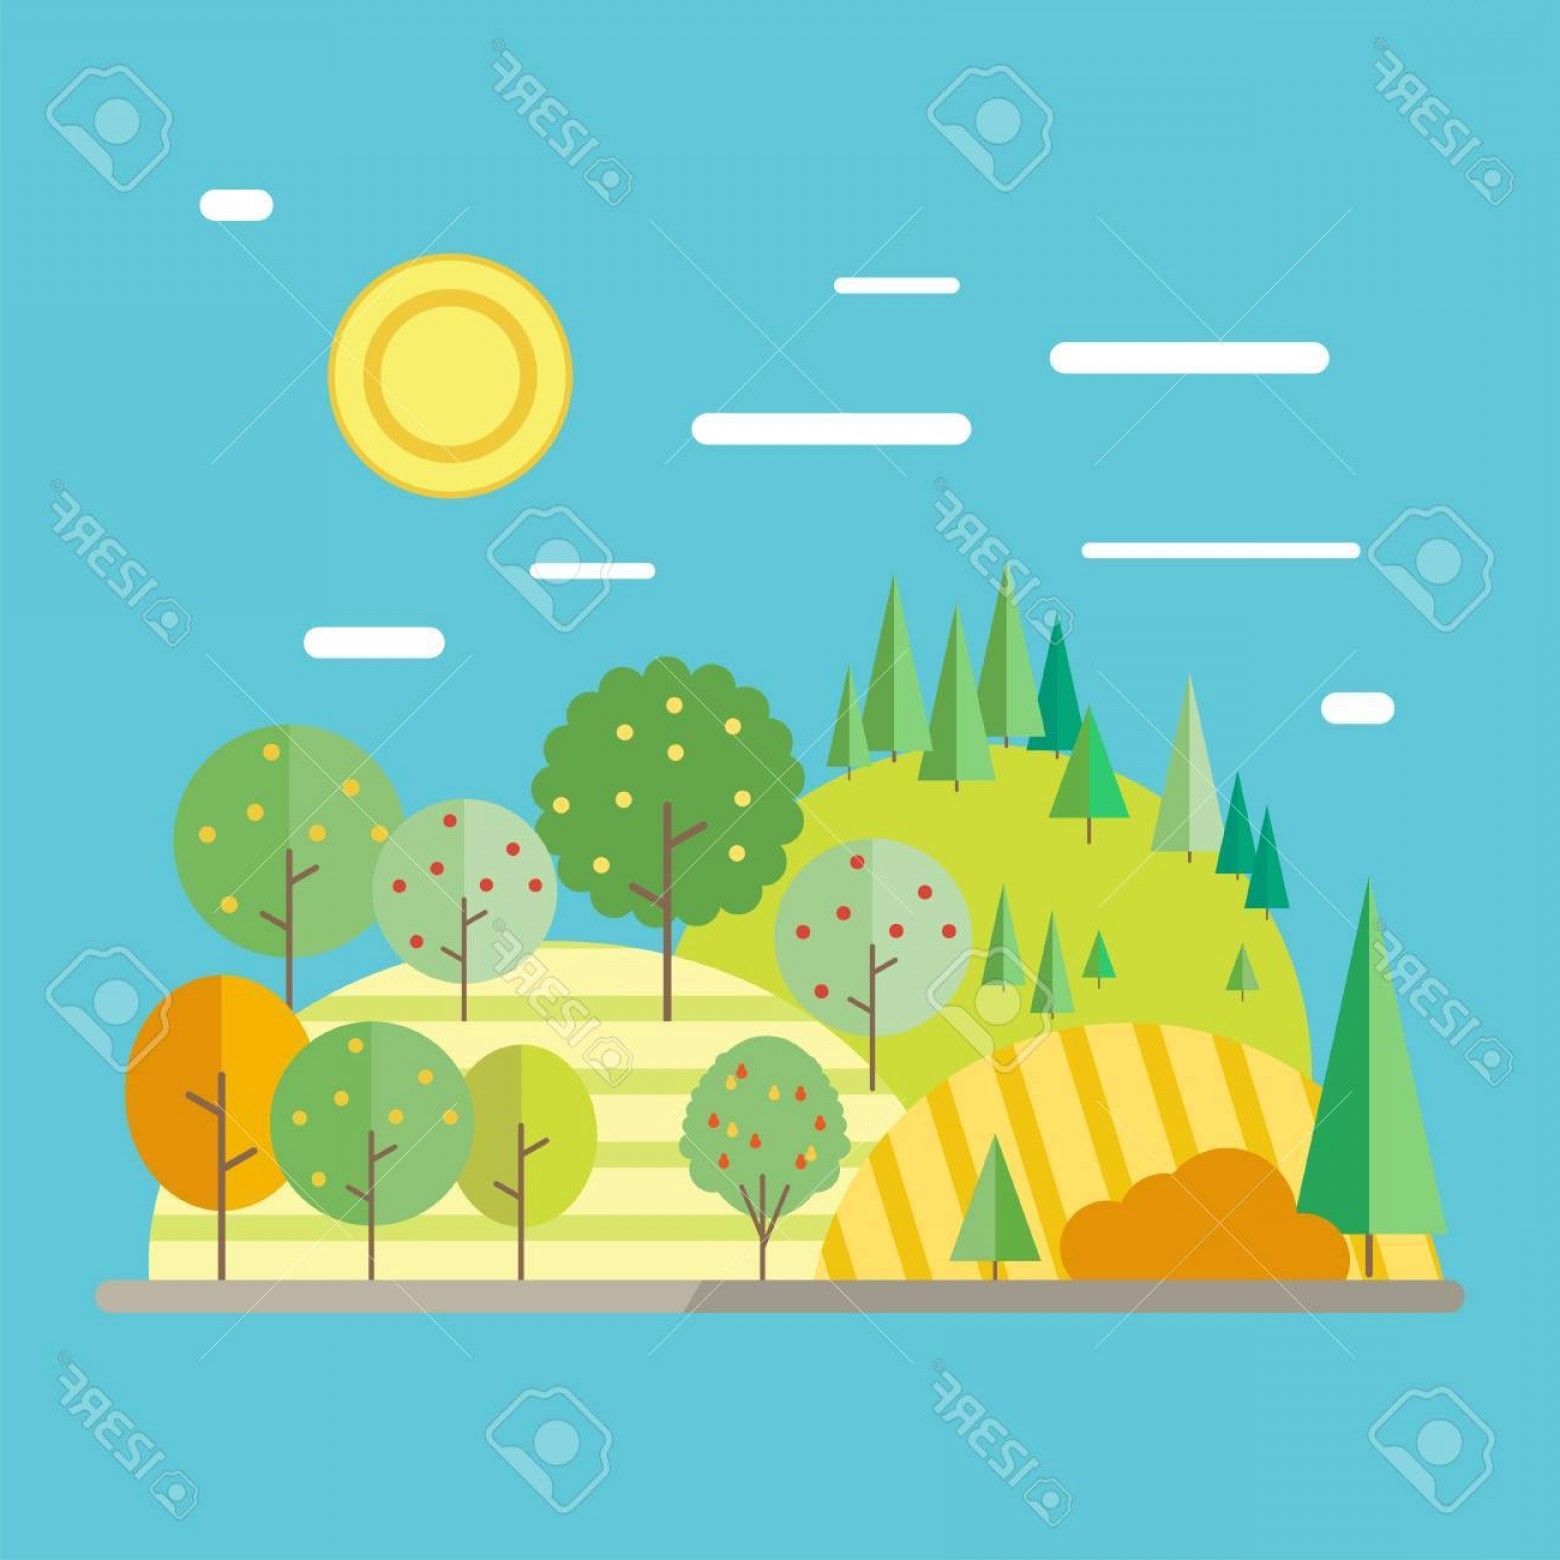 Flat Vector Art And Abstract Forest: Photostock Vector Autumn Landscape In Flat Style Abstract Forest Fruit Trees And Field